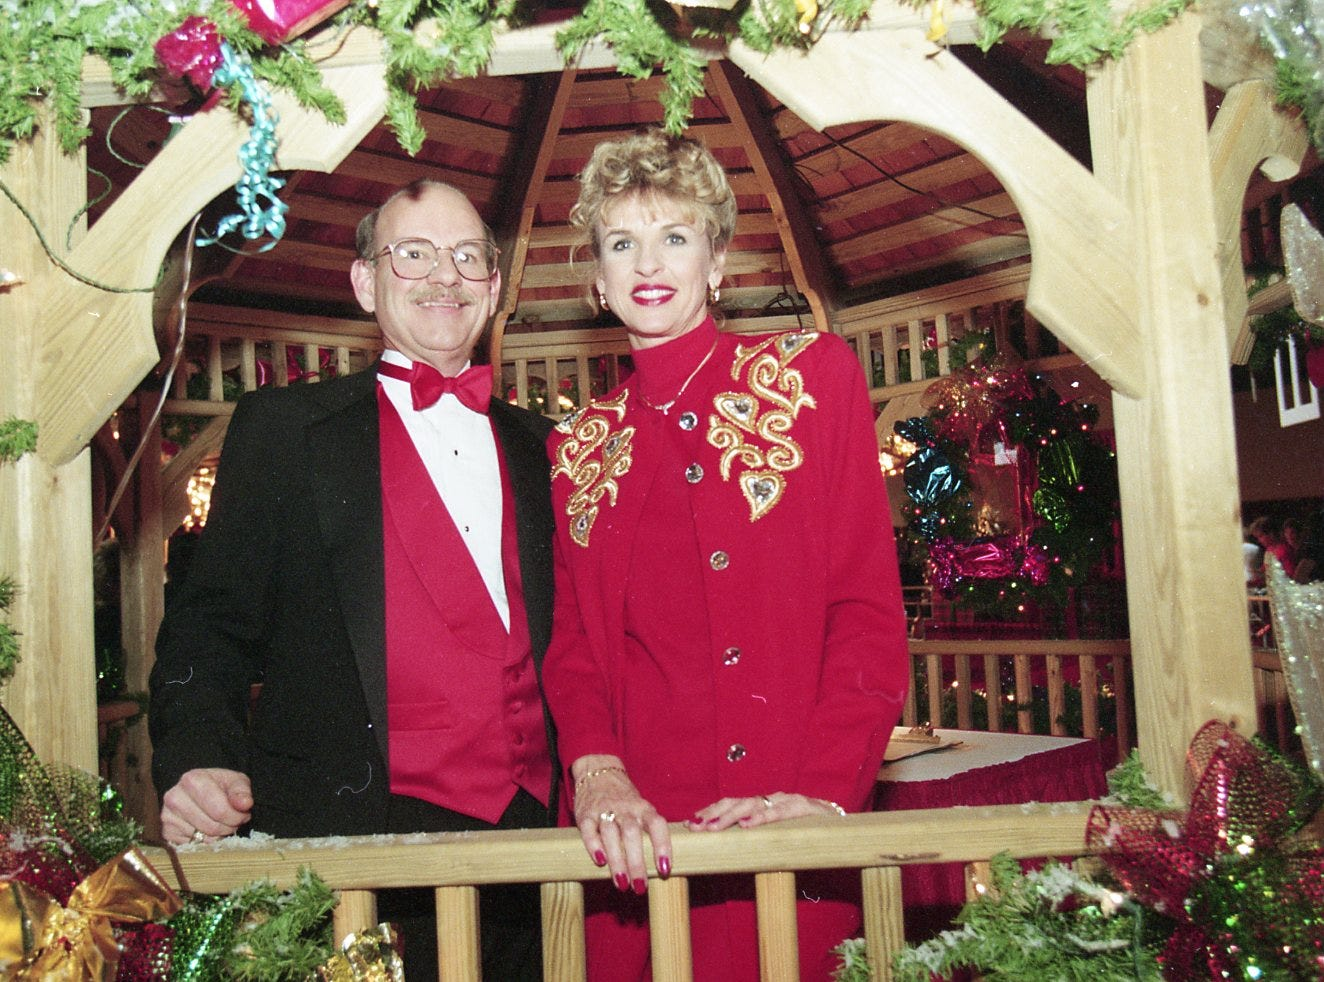 Brent Young and Susan Gregory at the 1995 Fantasy of Trees opening night gala.